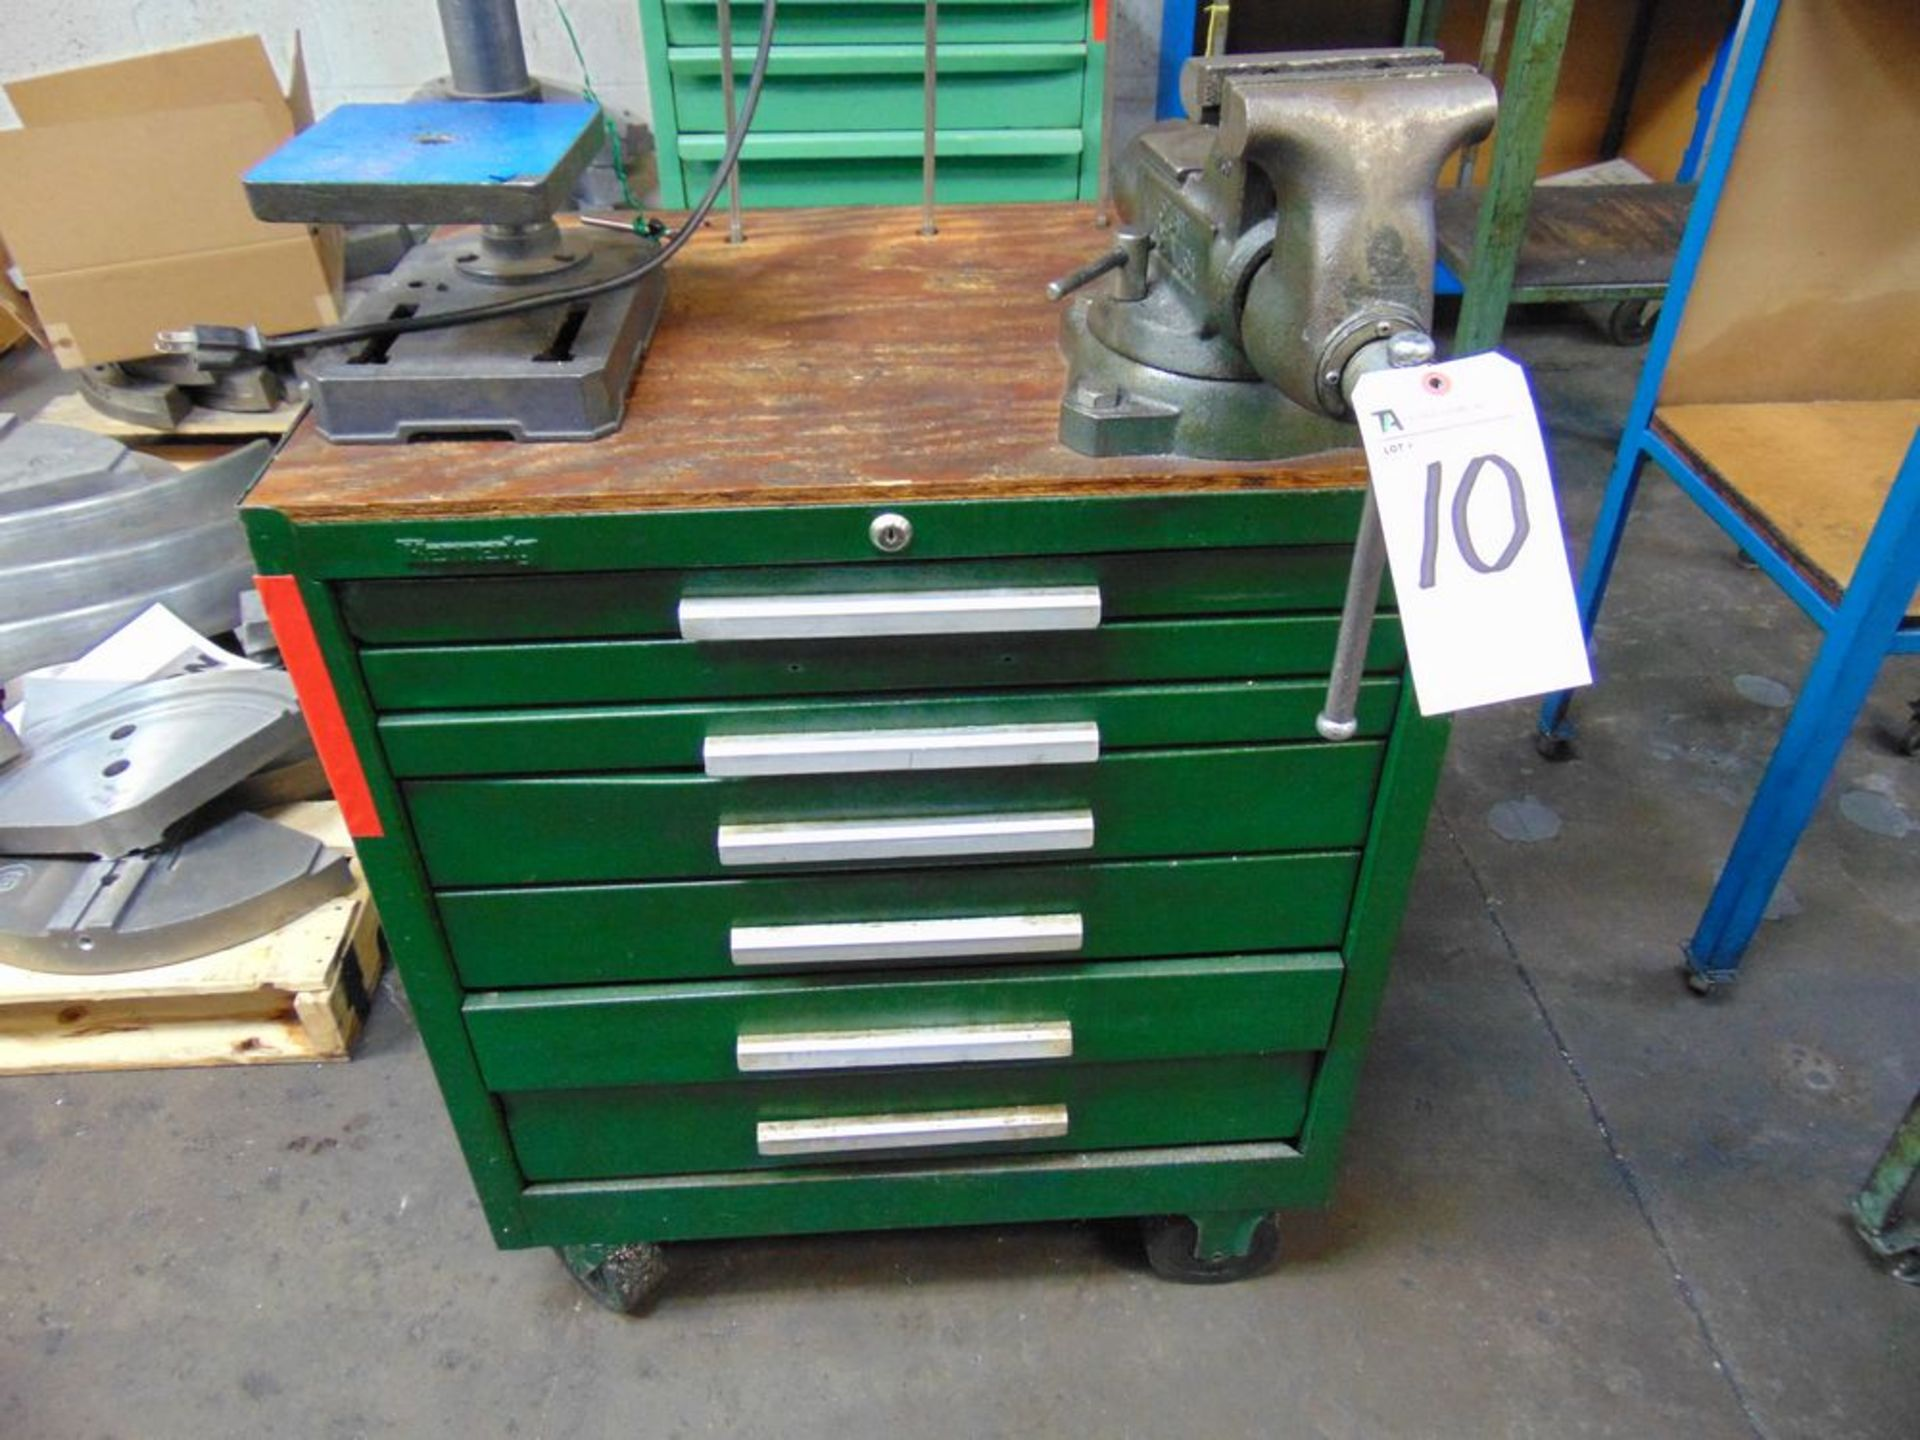 Lot 10 - Kennedy 6-Drawer Tool Box w/ Vise & Contents